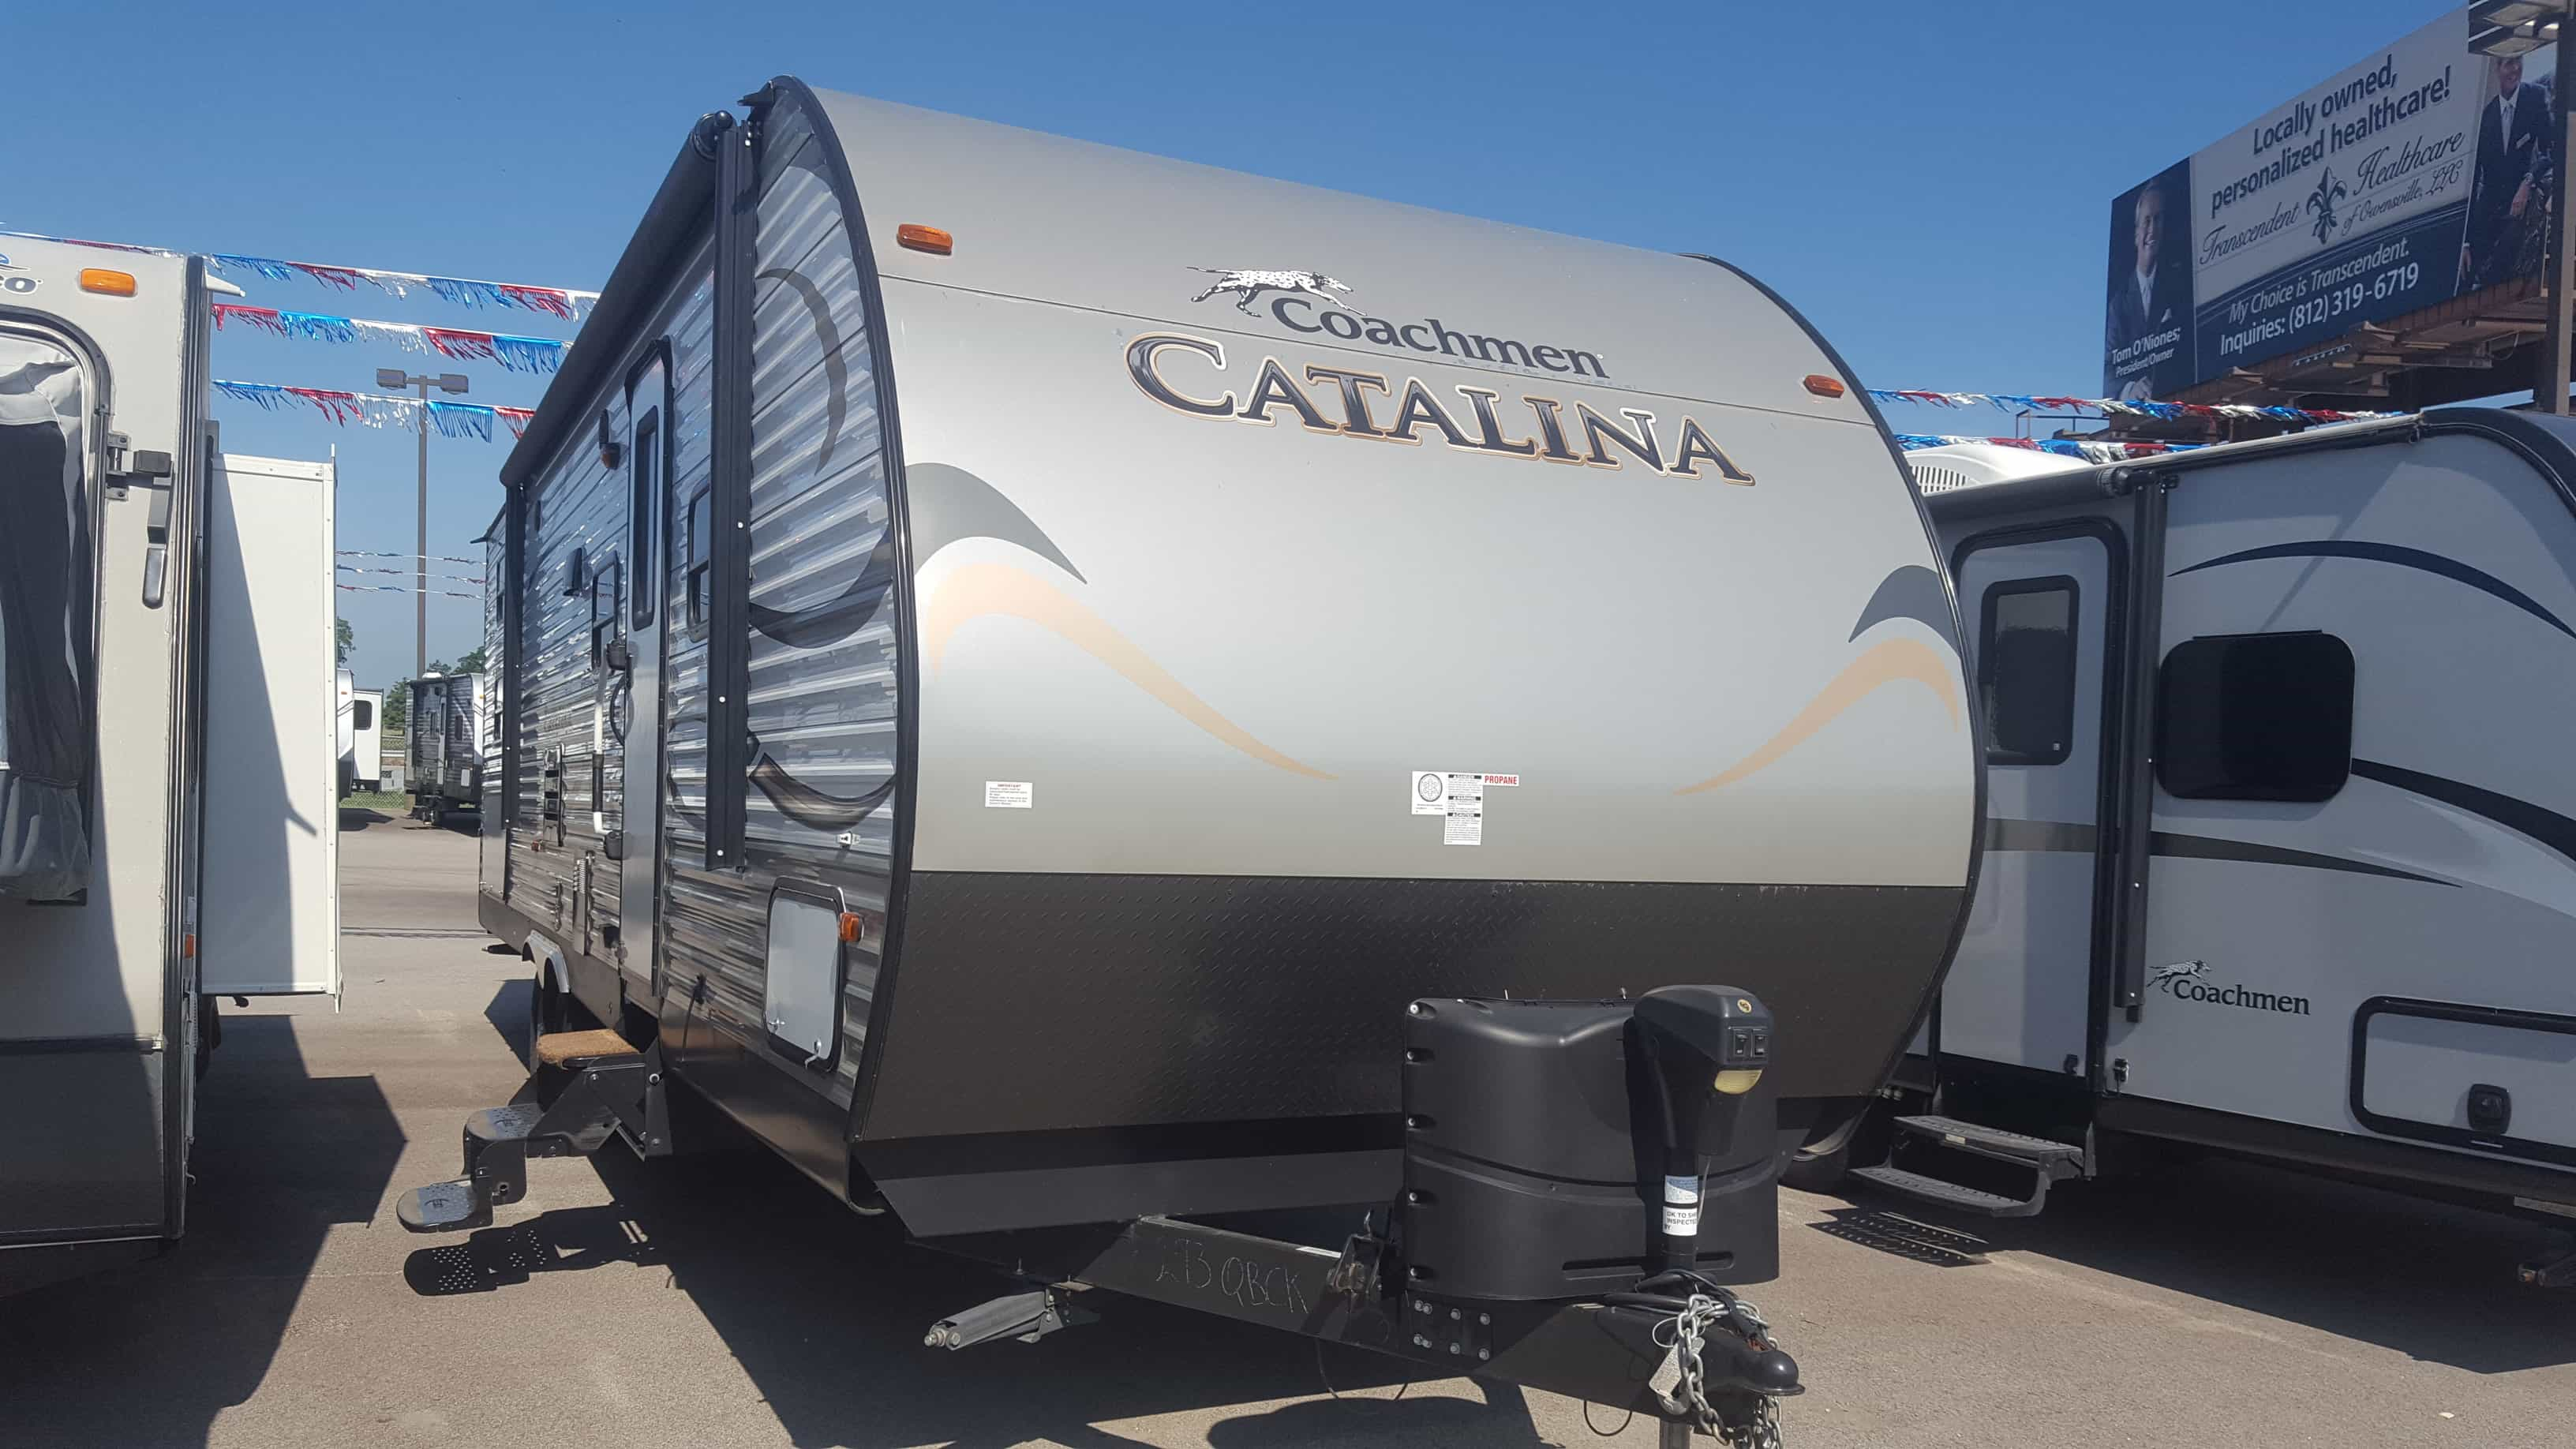 USED 2015 Coachmen CATALINA 293QBCK - American RV